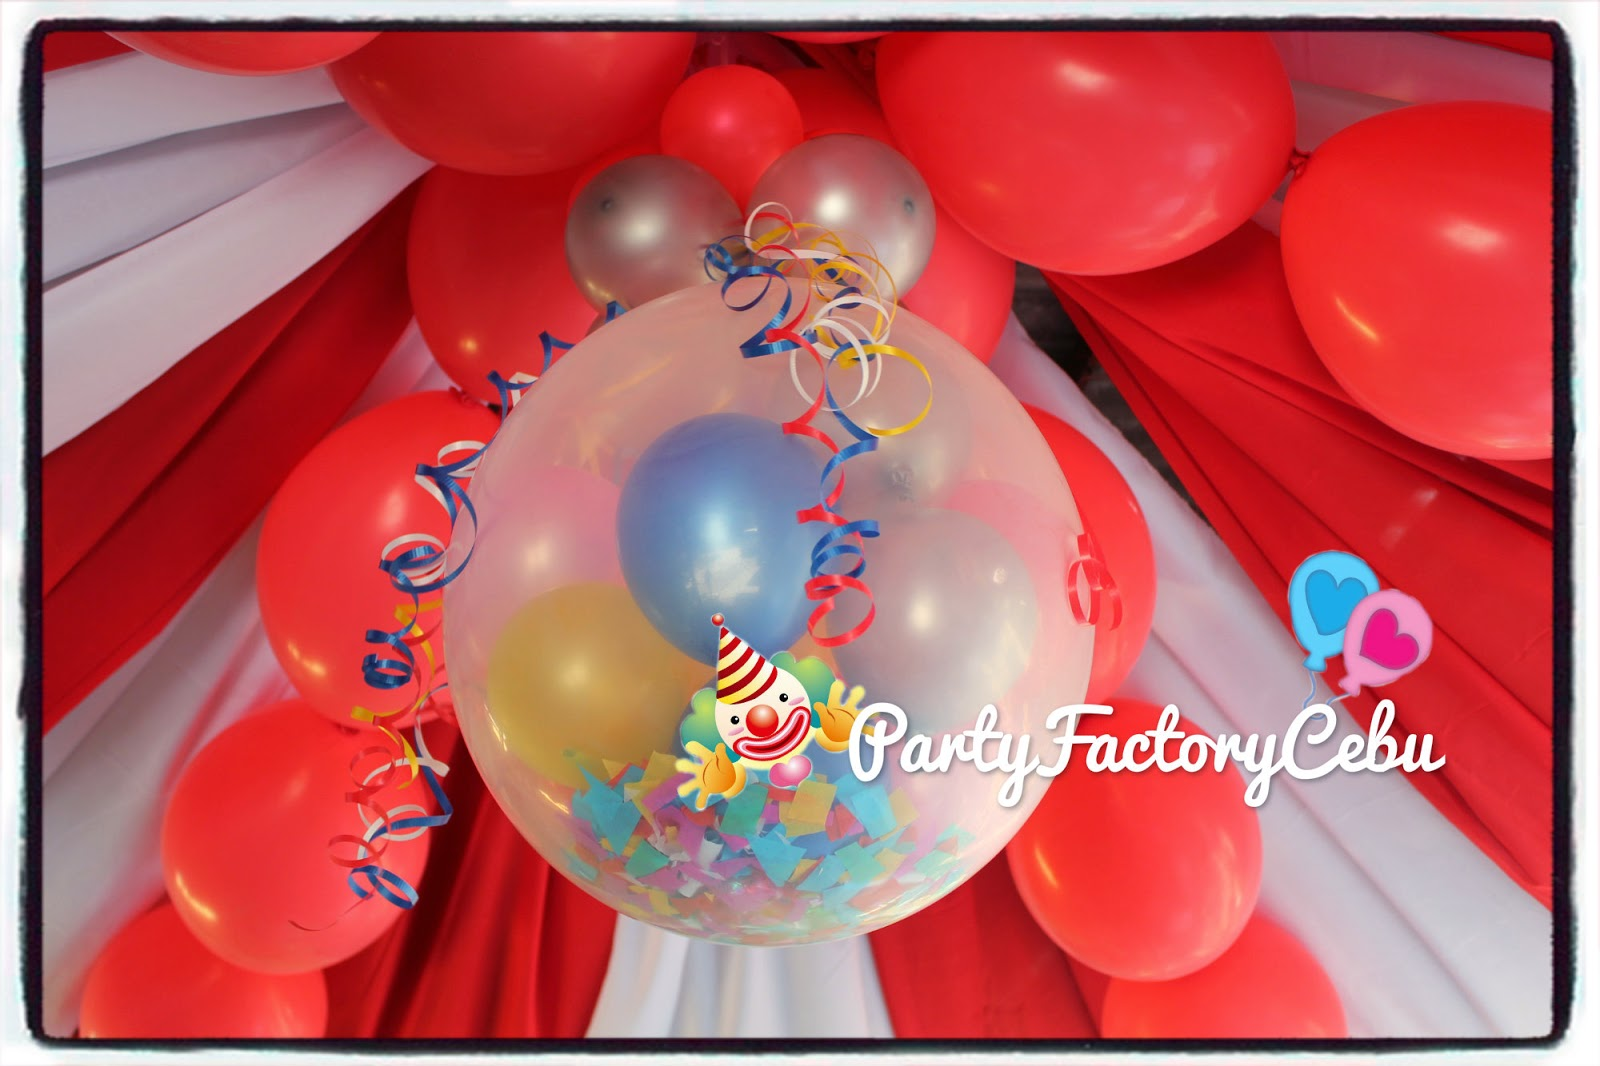 Welcome To Partyfactory Cebu Syc Kelvin S 2nd Birthday Bash